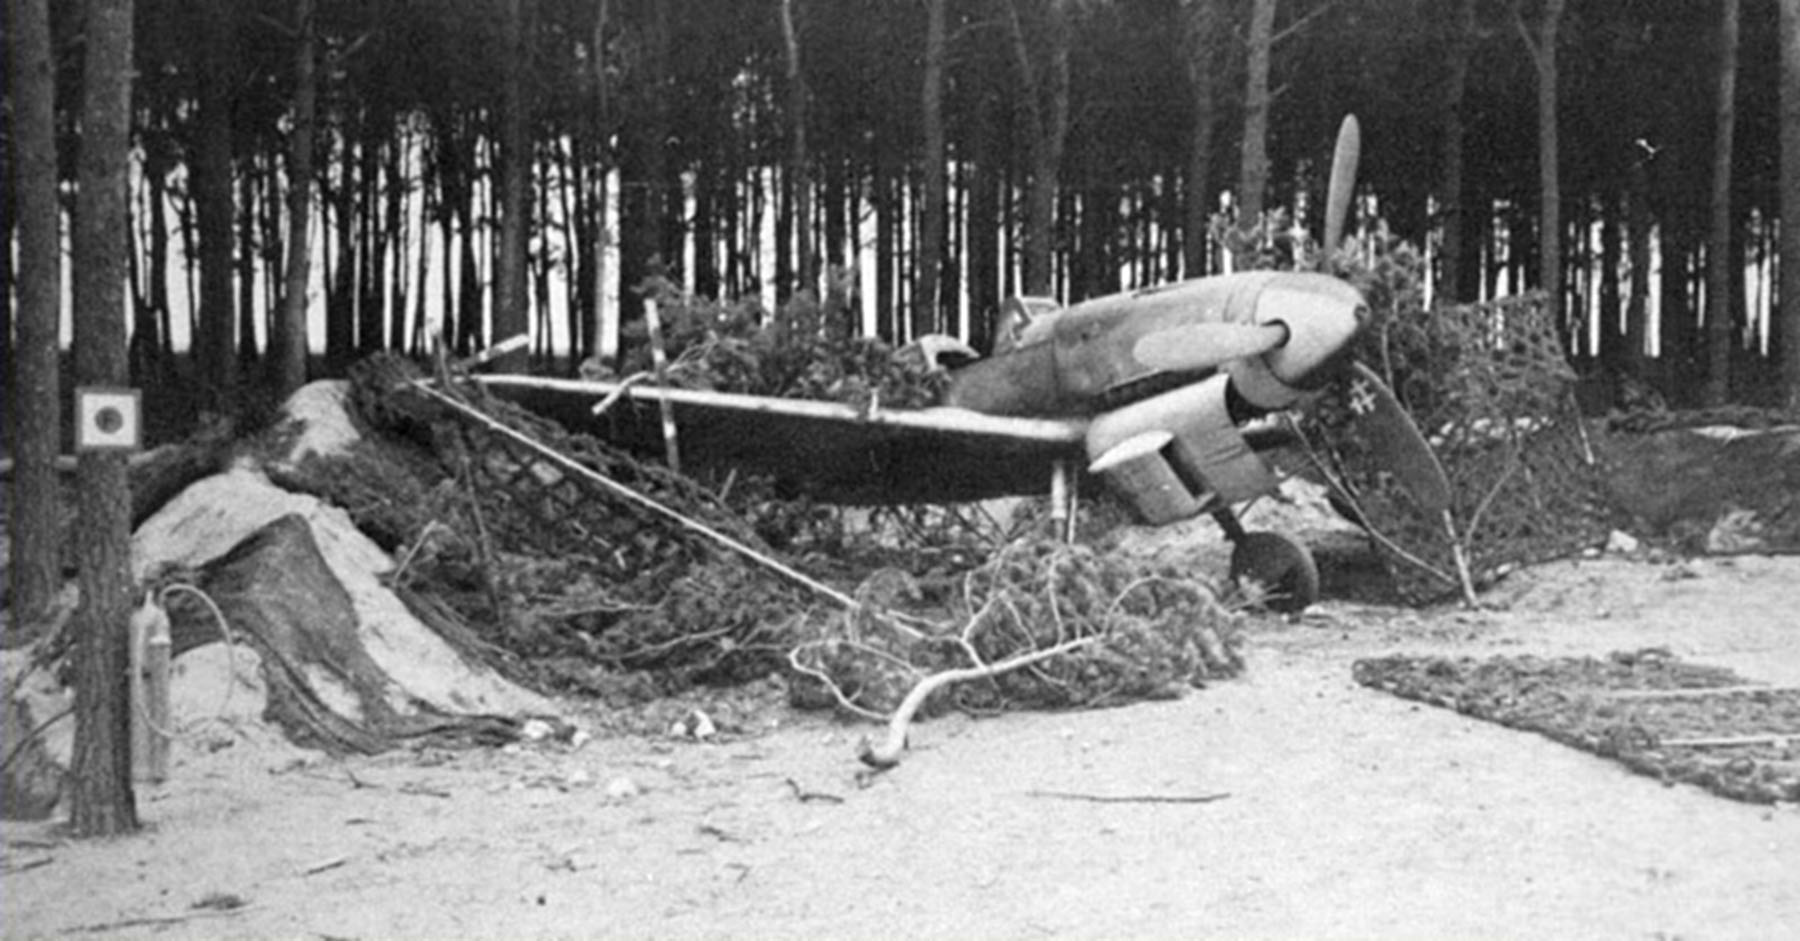 Messerschmitt Bf 109G10 Erla Reichsverteidigung unknown unit and pilot Stendal 1945 01